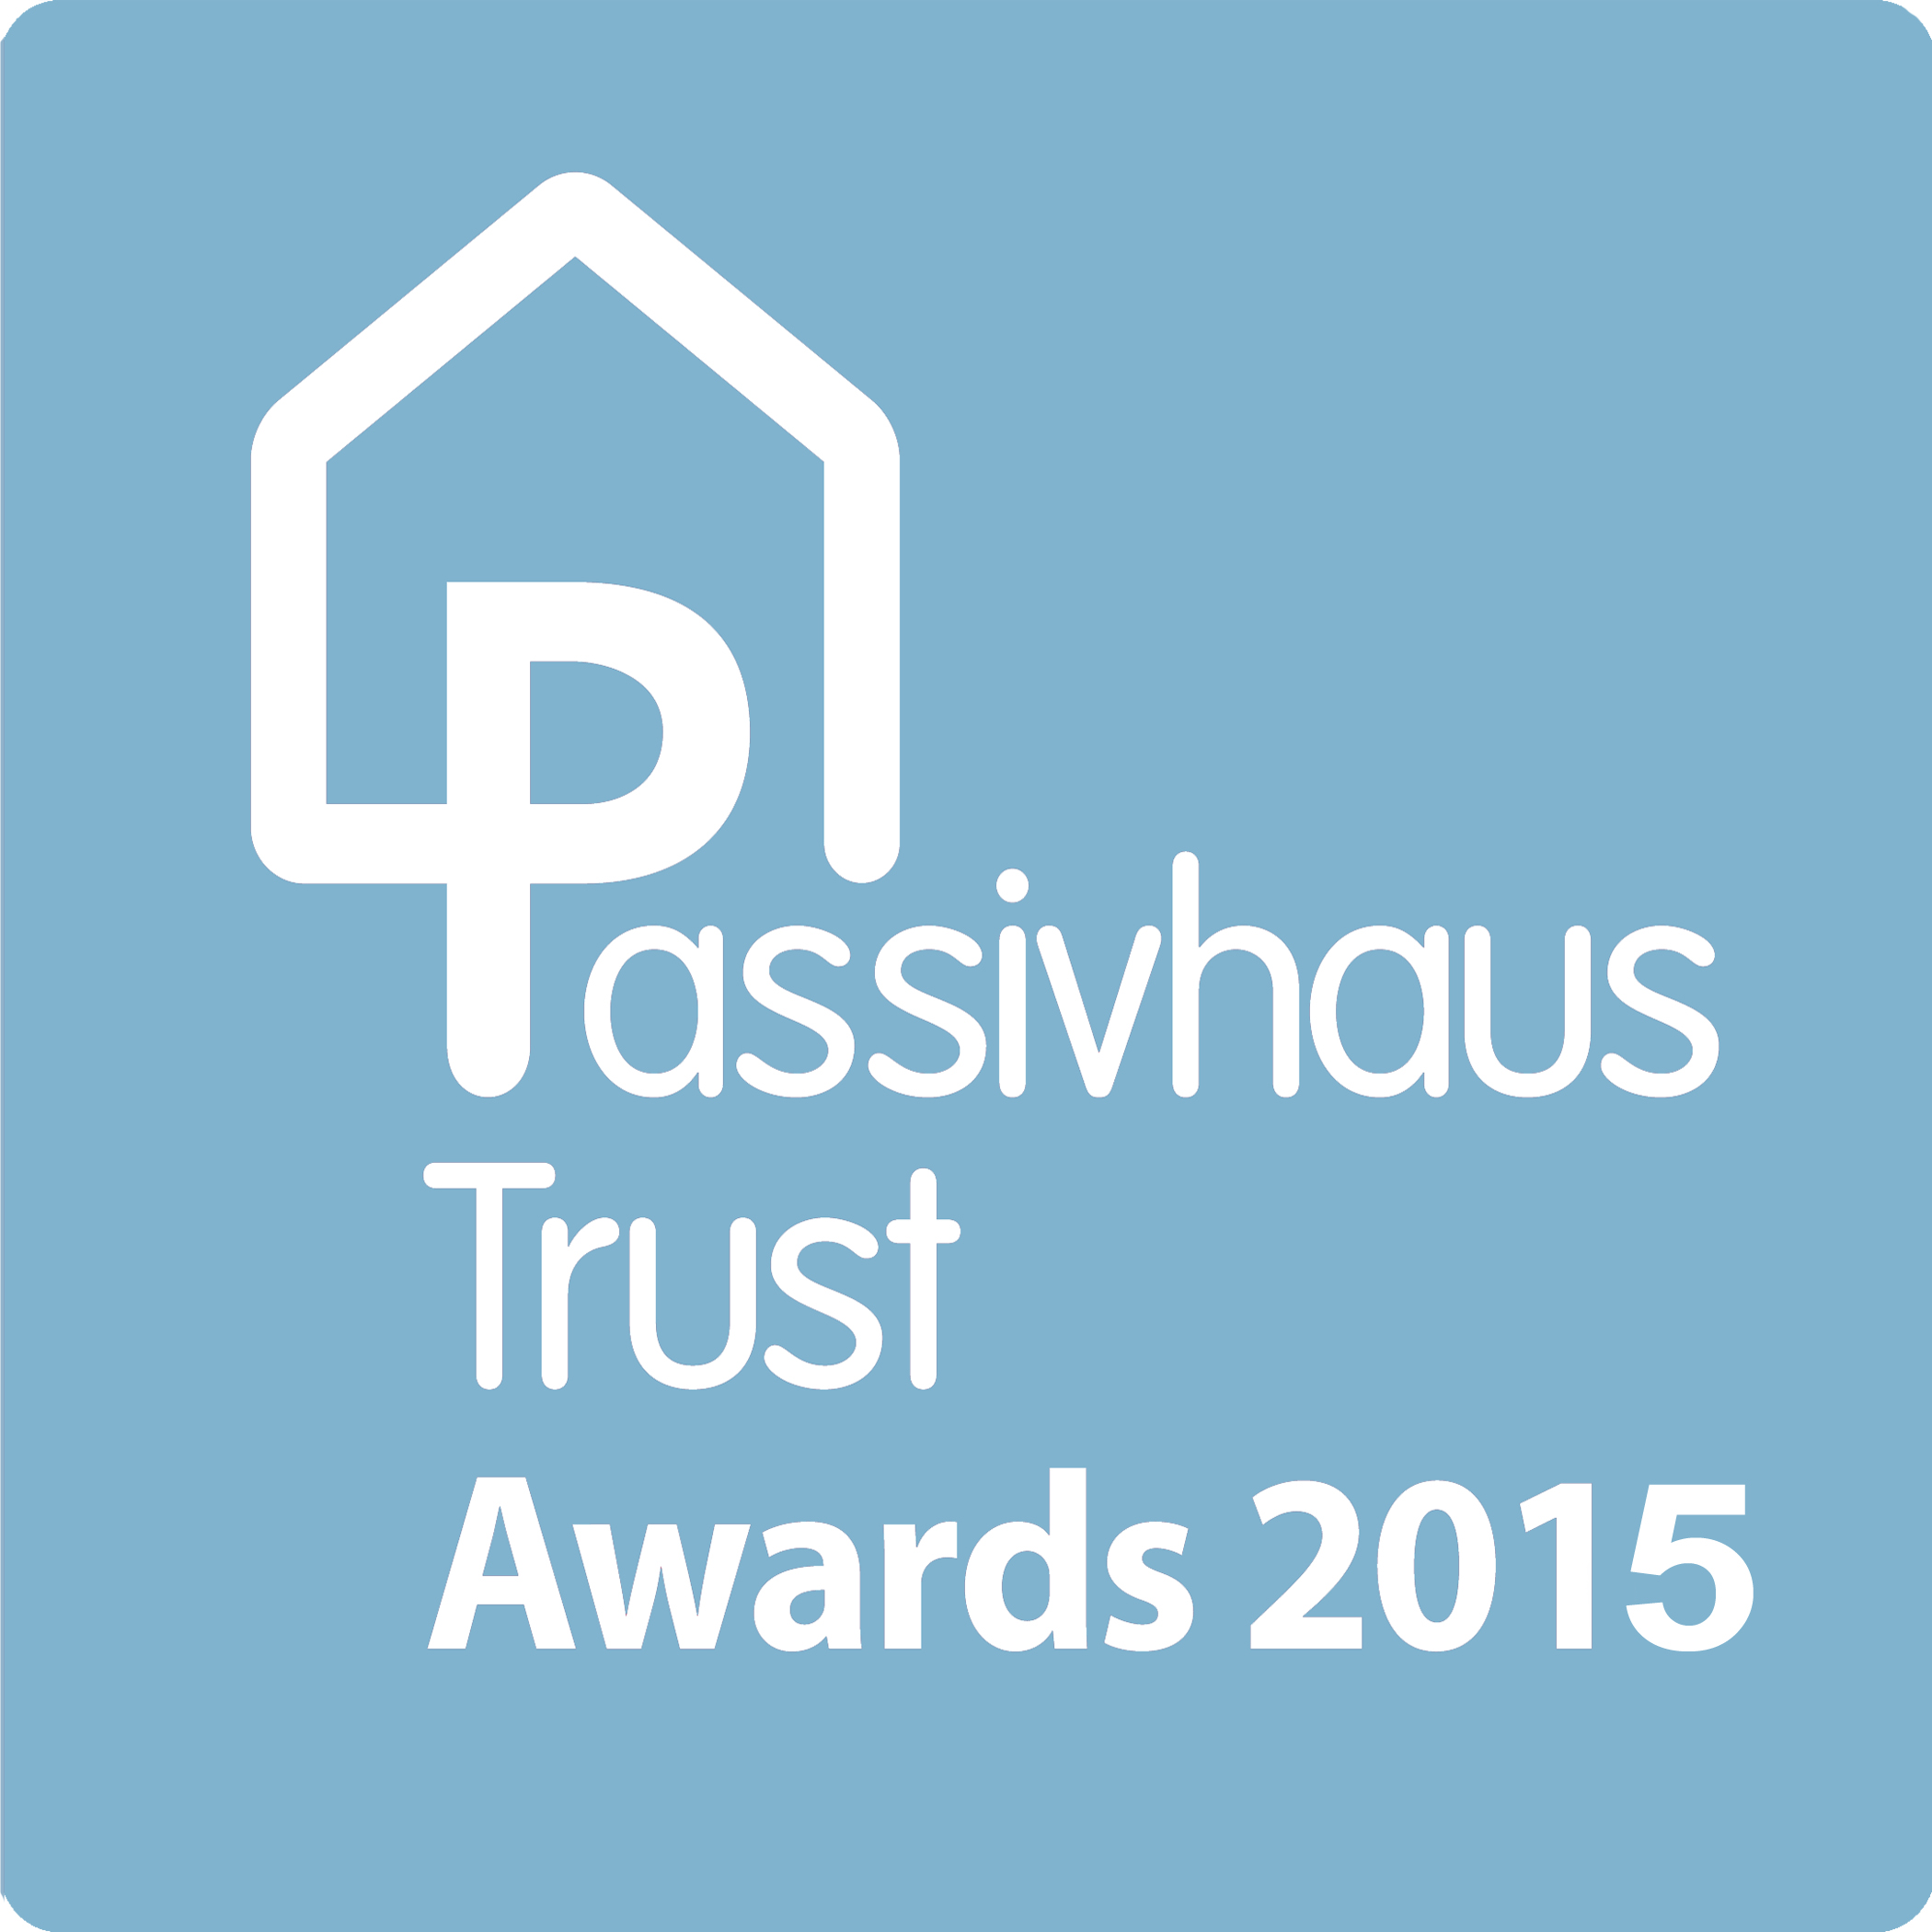 2015 UK Passivhaus Awards